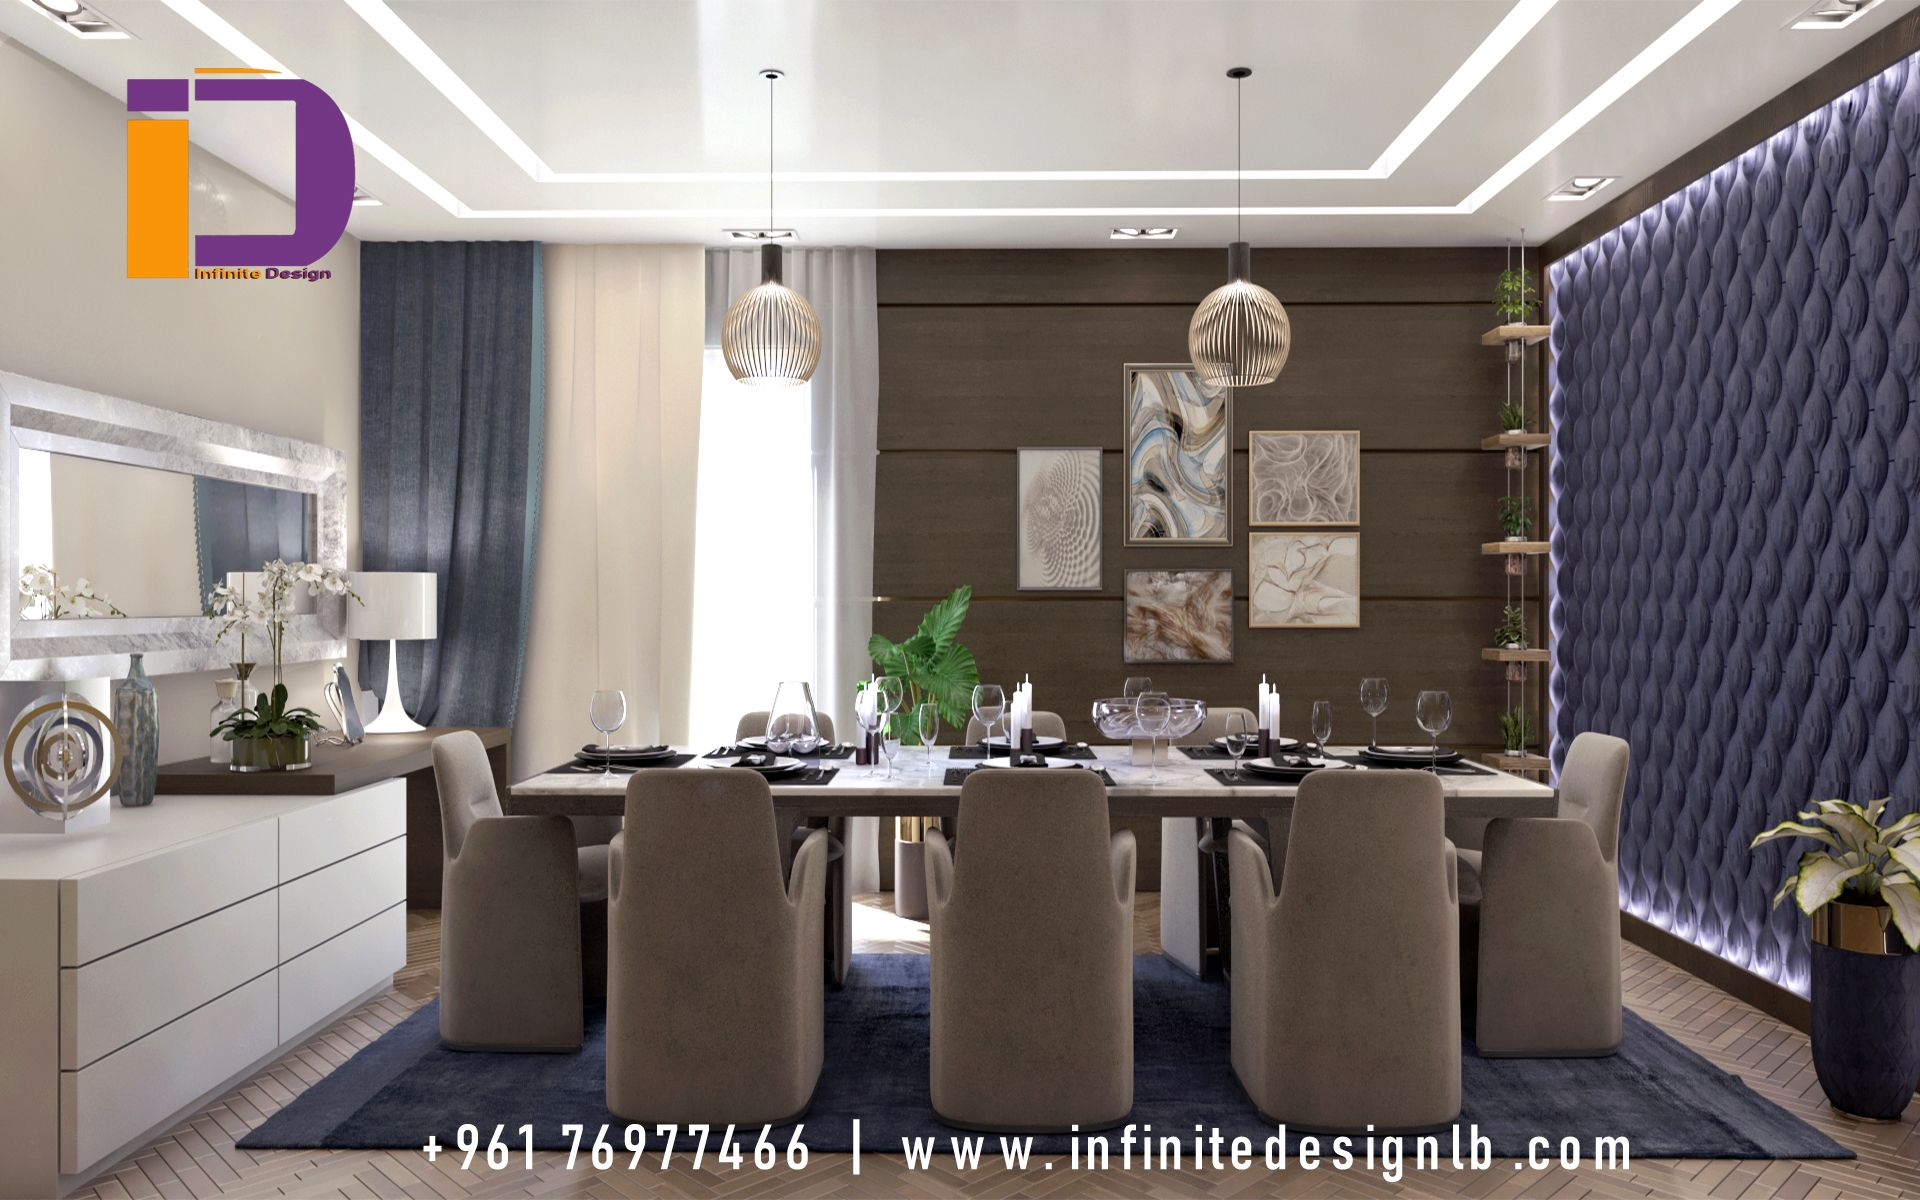 A Unique Dining Room Designed With A New Classic Style That